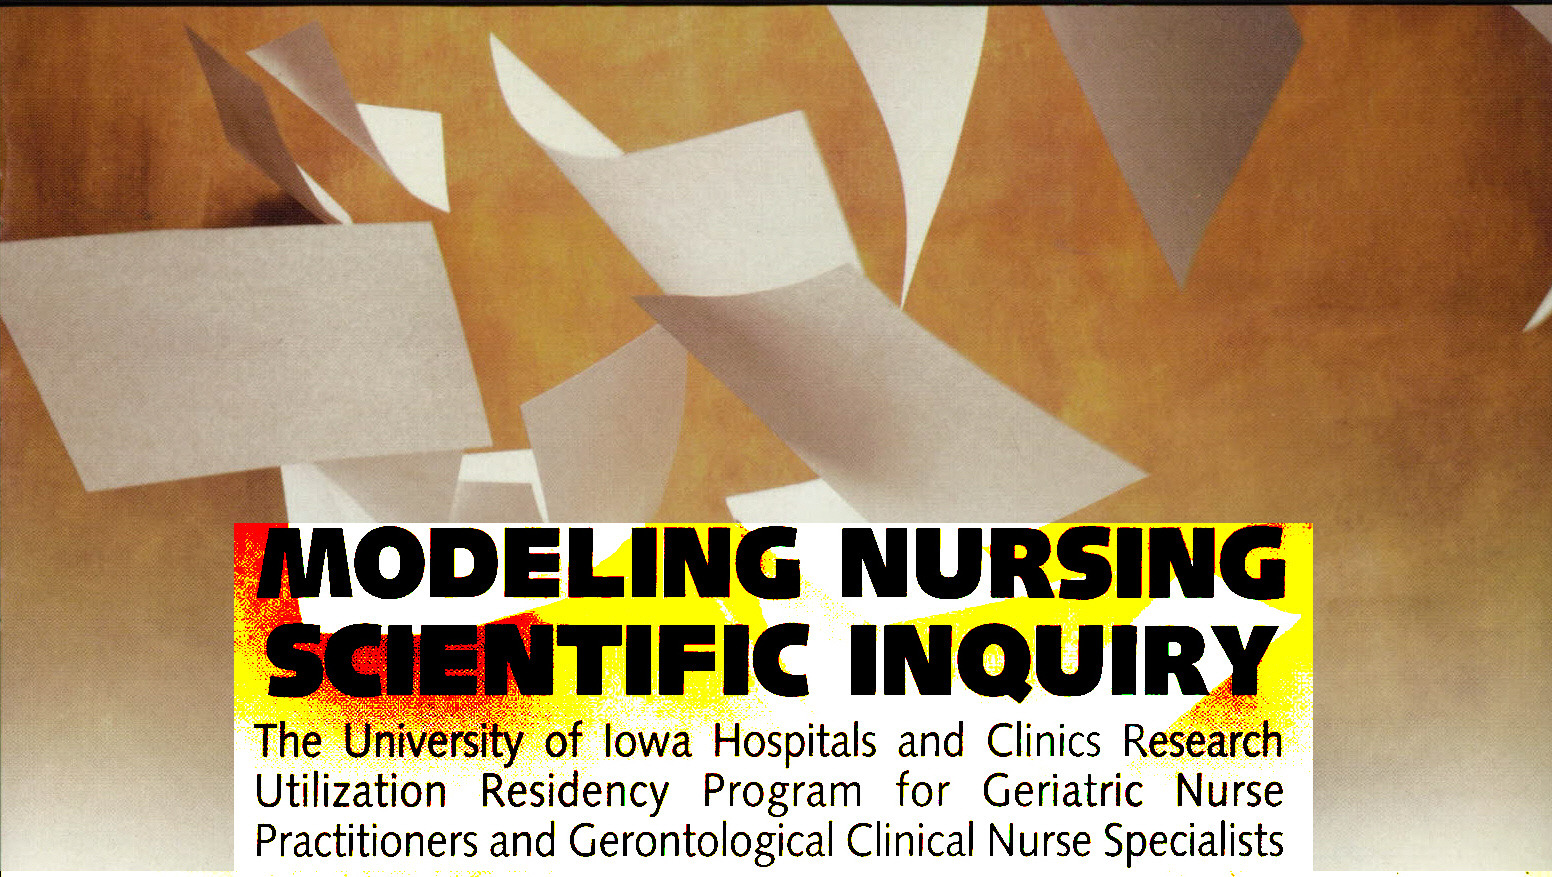 nurse transition to professional practice nursing essay All major concepts of the nursing program are addressed leadership and the management of multiple patients are emphasized application of knowledge and skills occurs in the clinical setting to facilitate an effective transition from student to registered professional nurse.